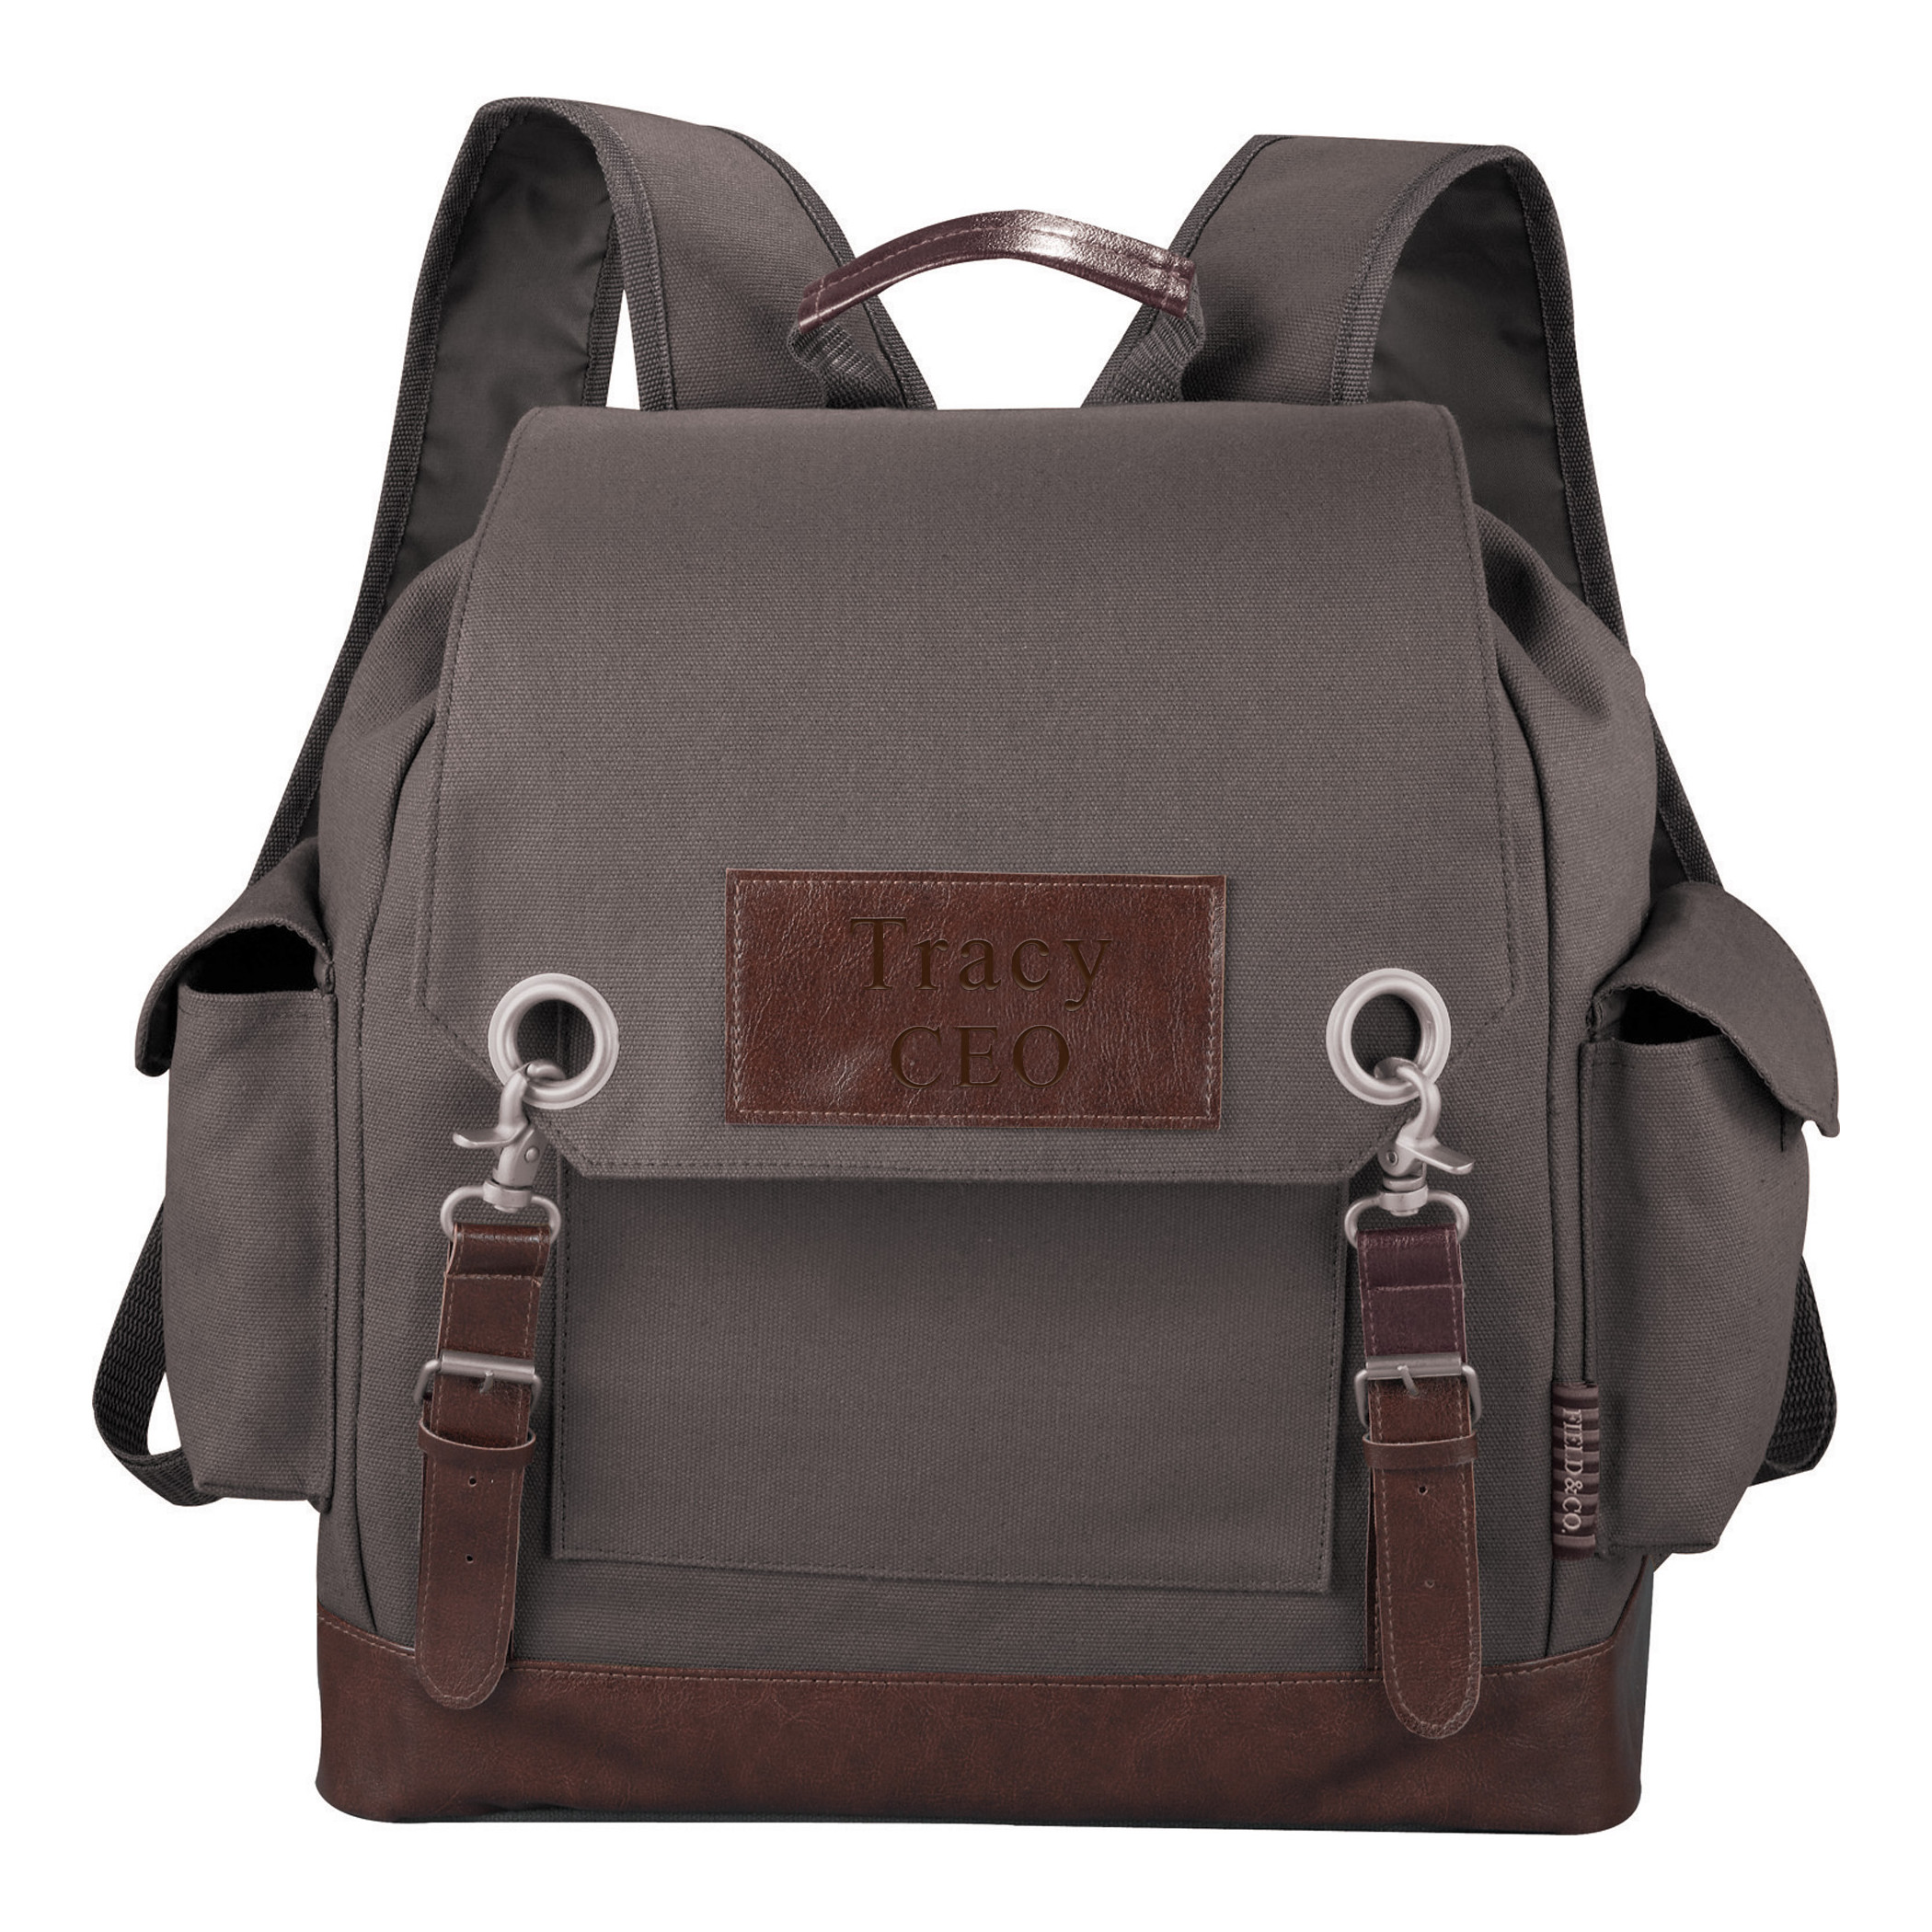 Field & Co. Classic Canvas Side Pockets Vintage Backpack